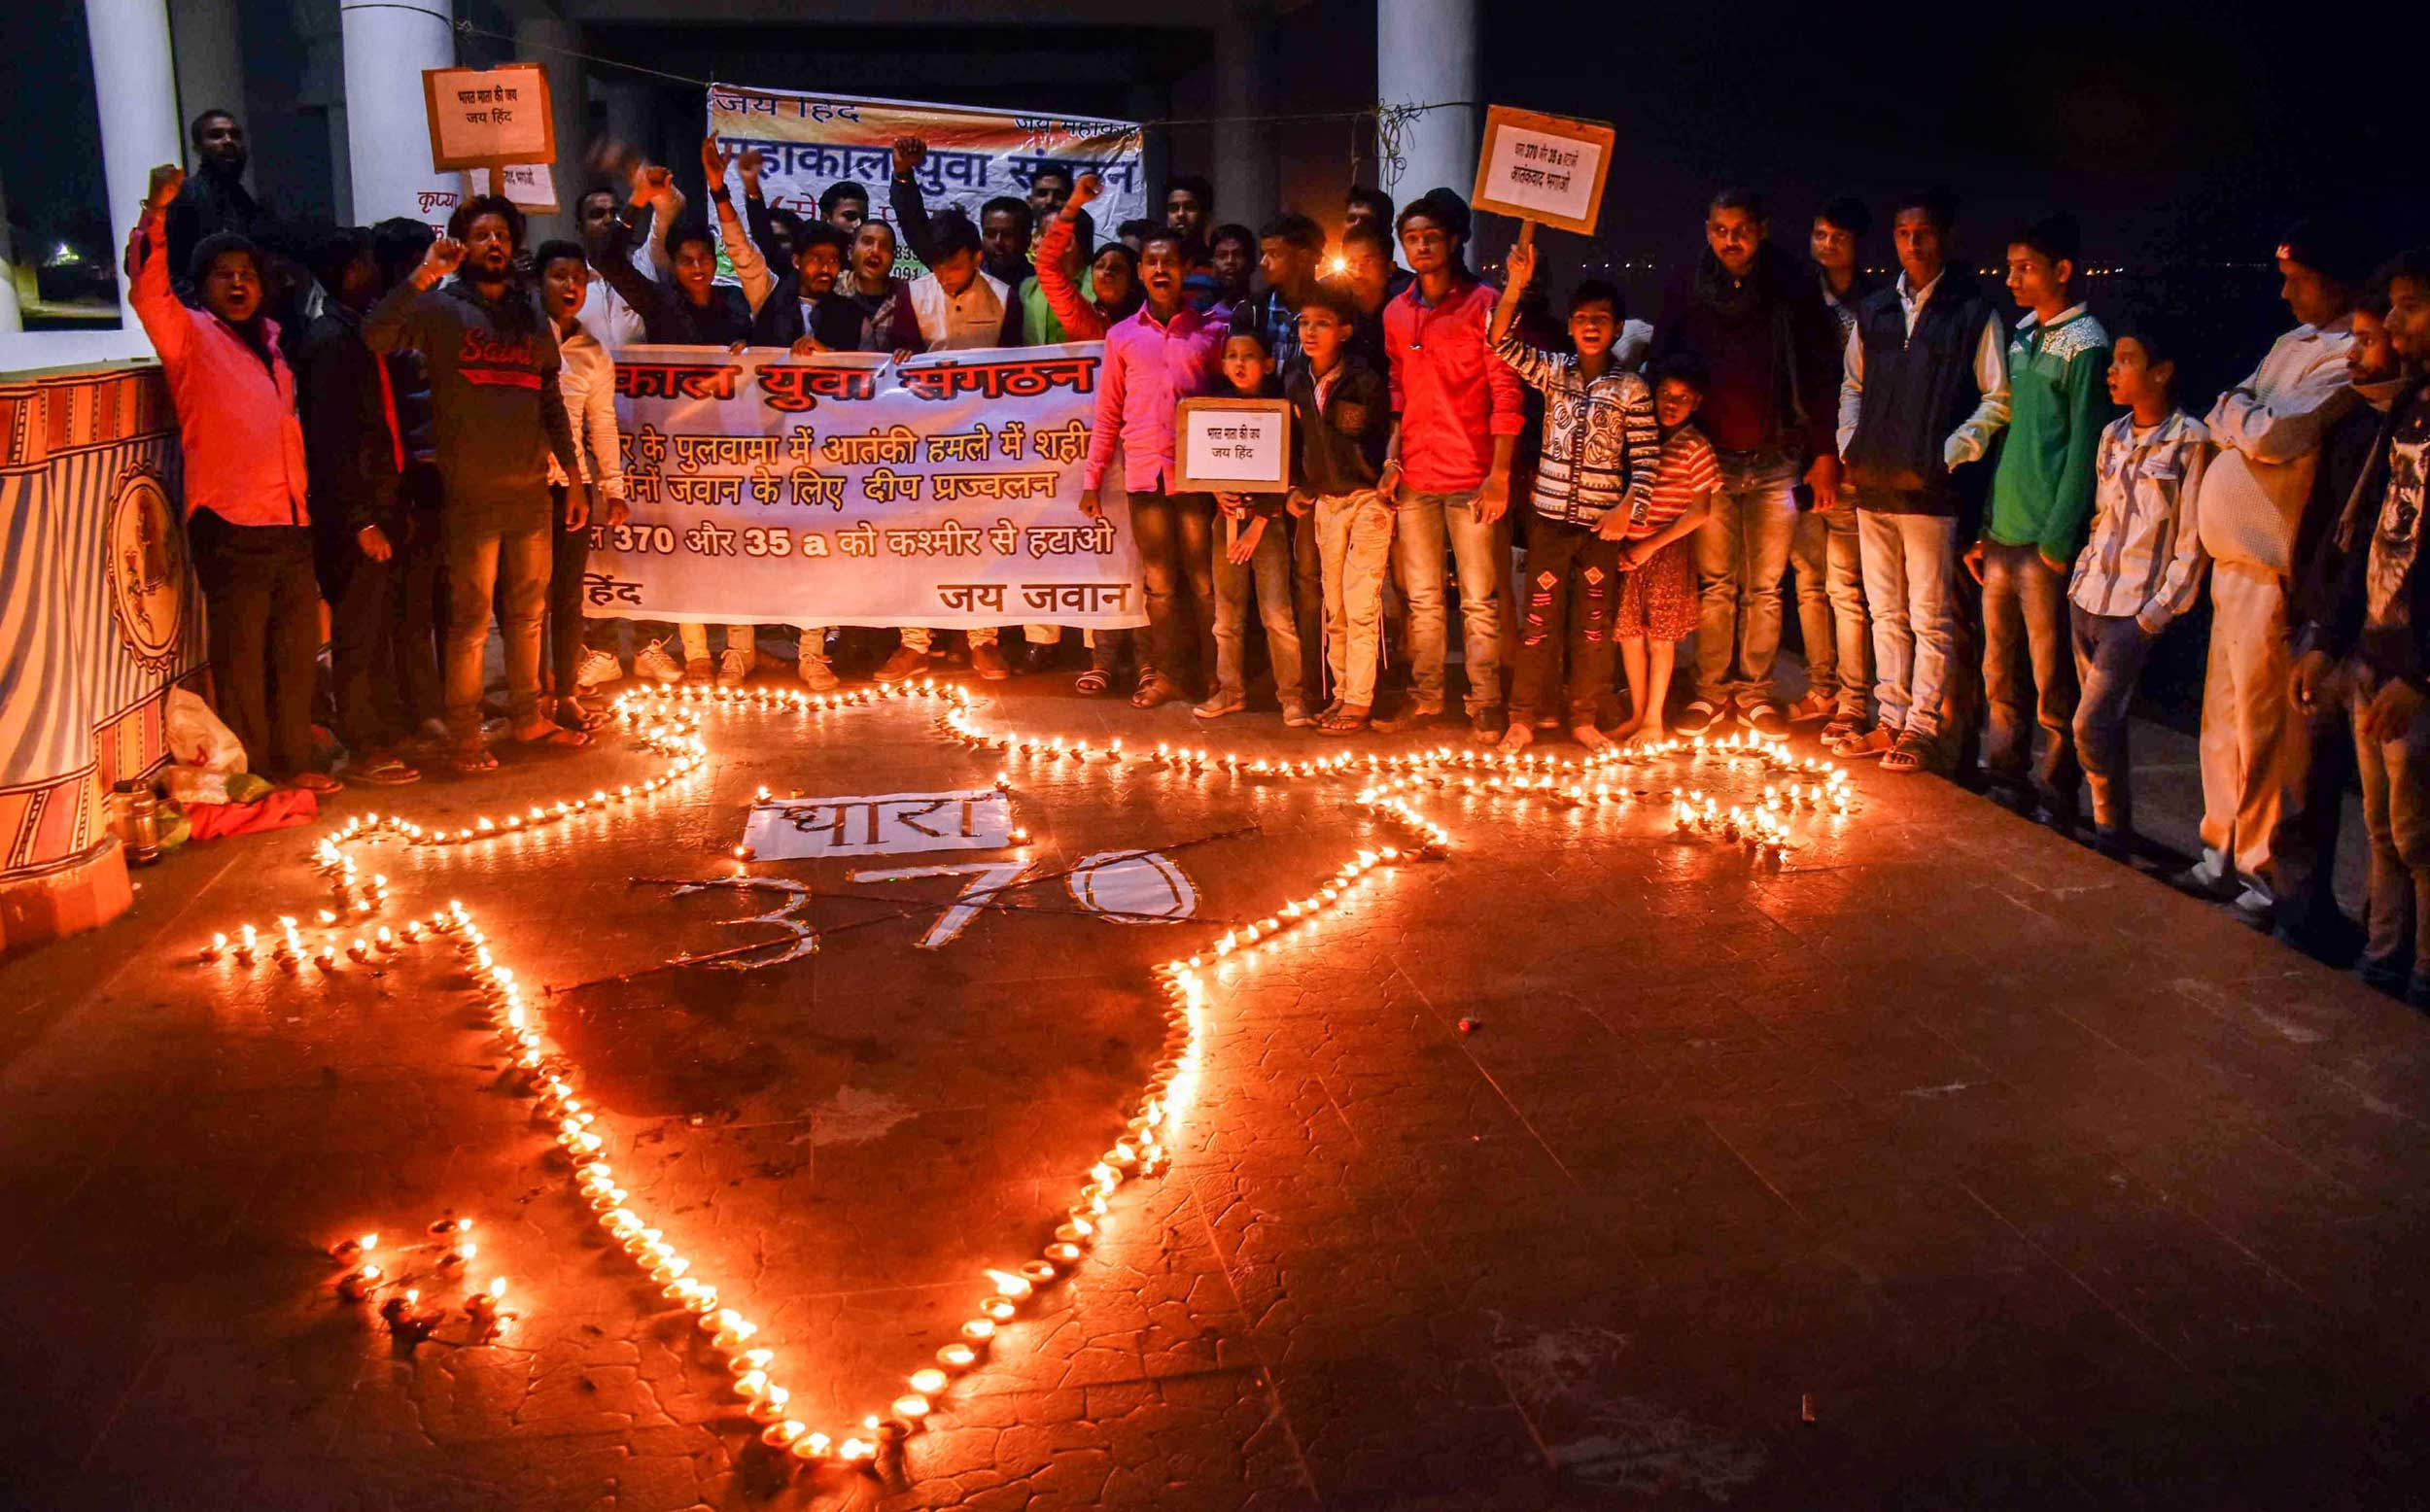 A candle light vigil in Patna on Monday to pay tribute to the CRPF jawans killed in the Pulwama terror attack